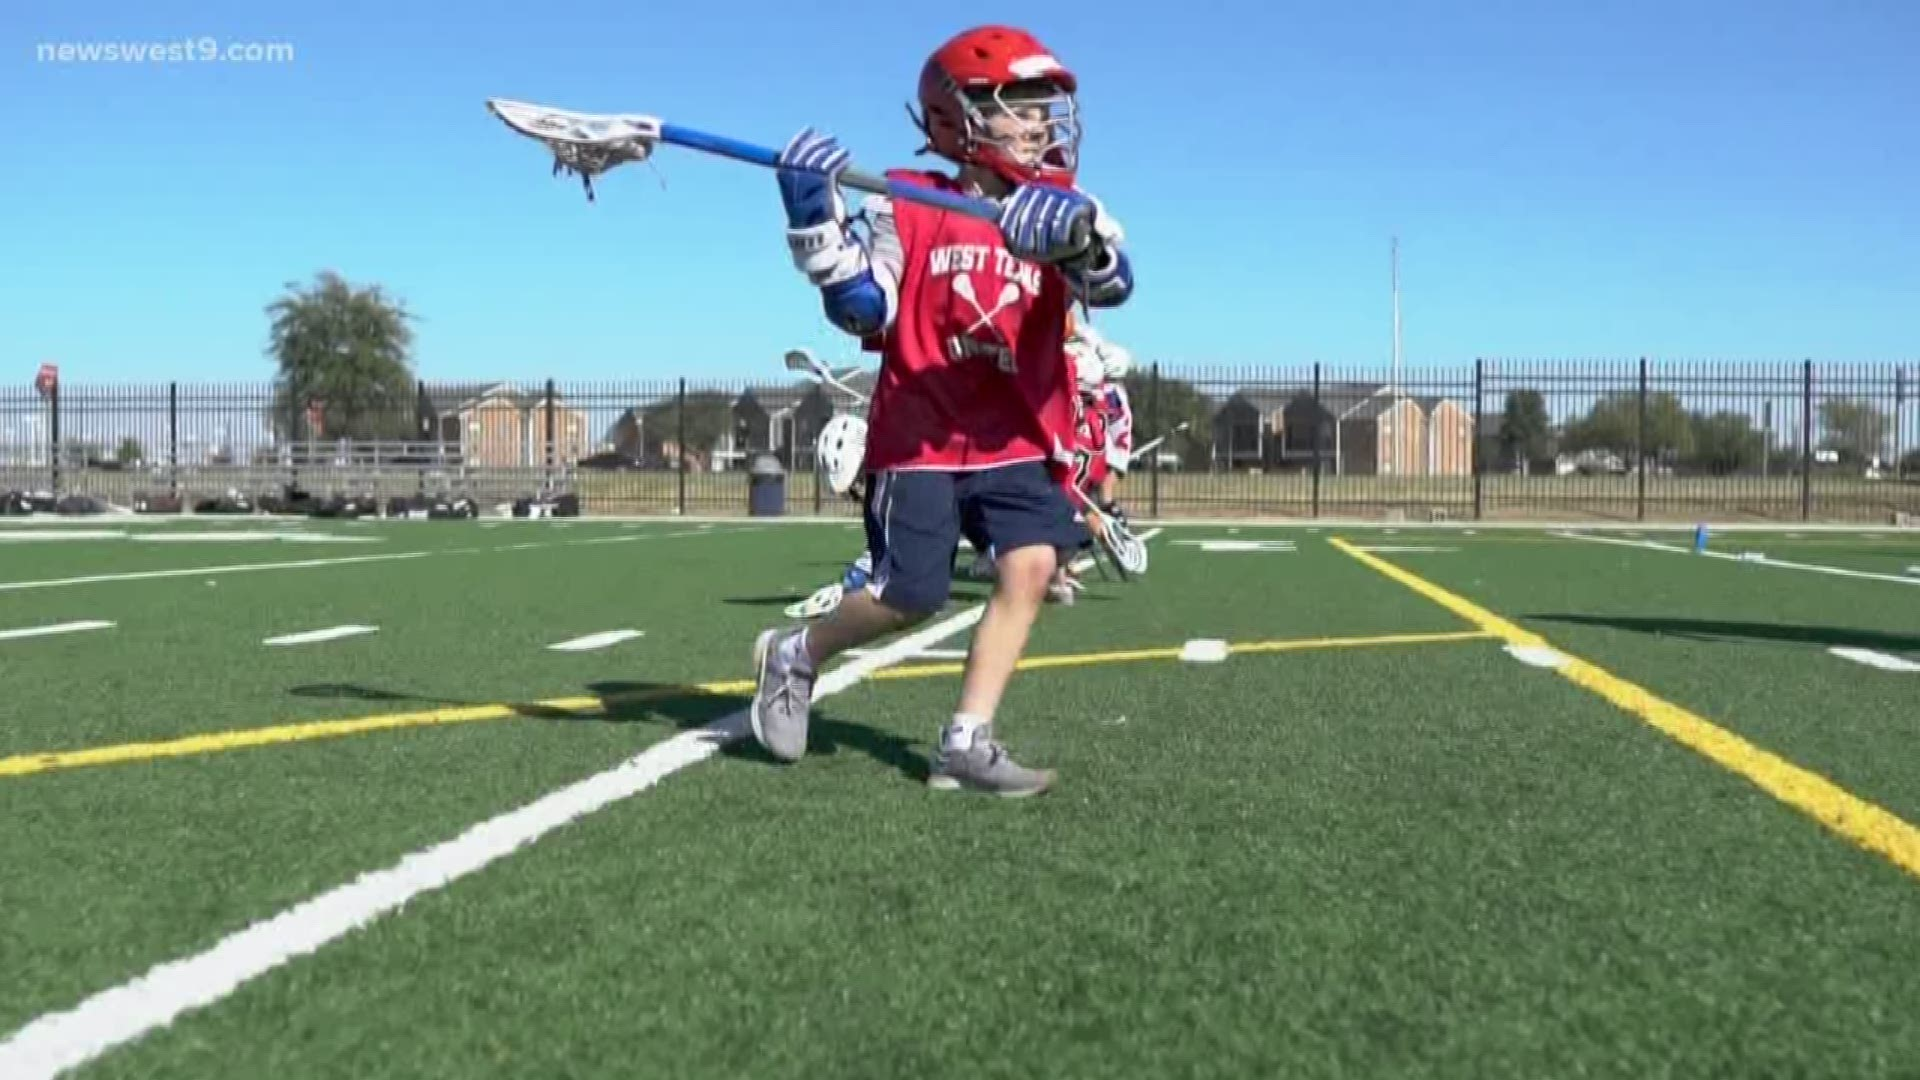 West Texas Lacrosse Holds Free Clinic Newswest9 Com